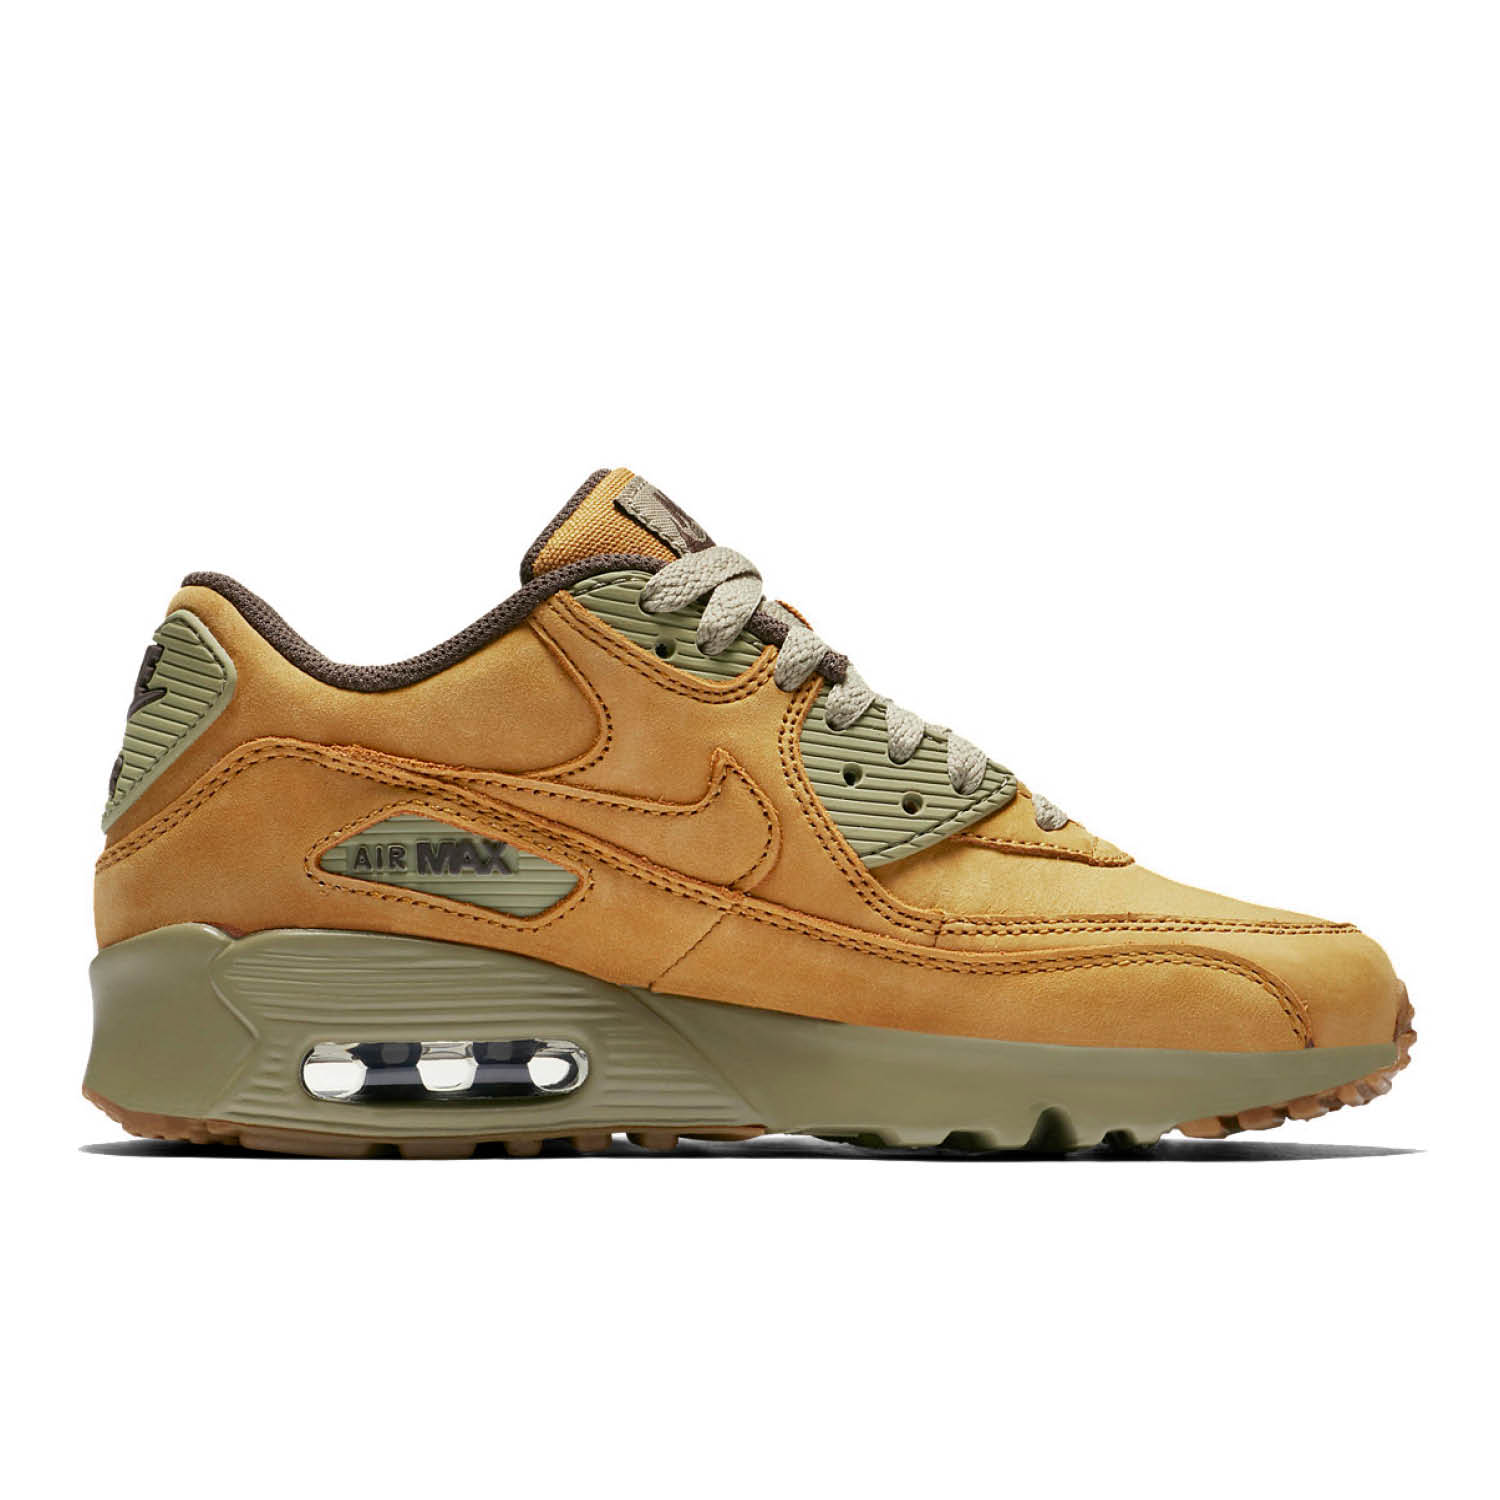 buty juniorskie nike air max 90 winter premium flax gs. Black Bedroom Furniture Sets. Home Design Ideas